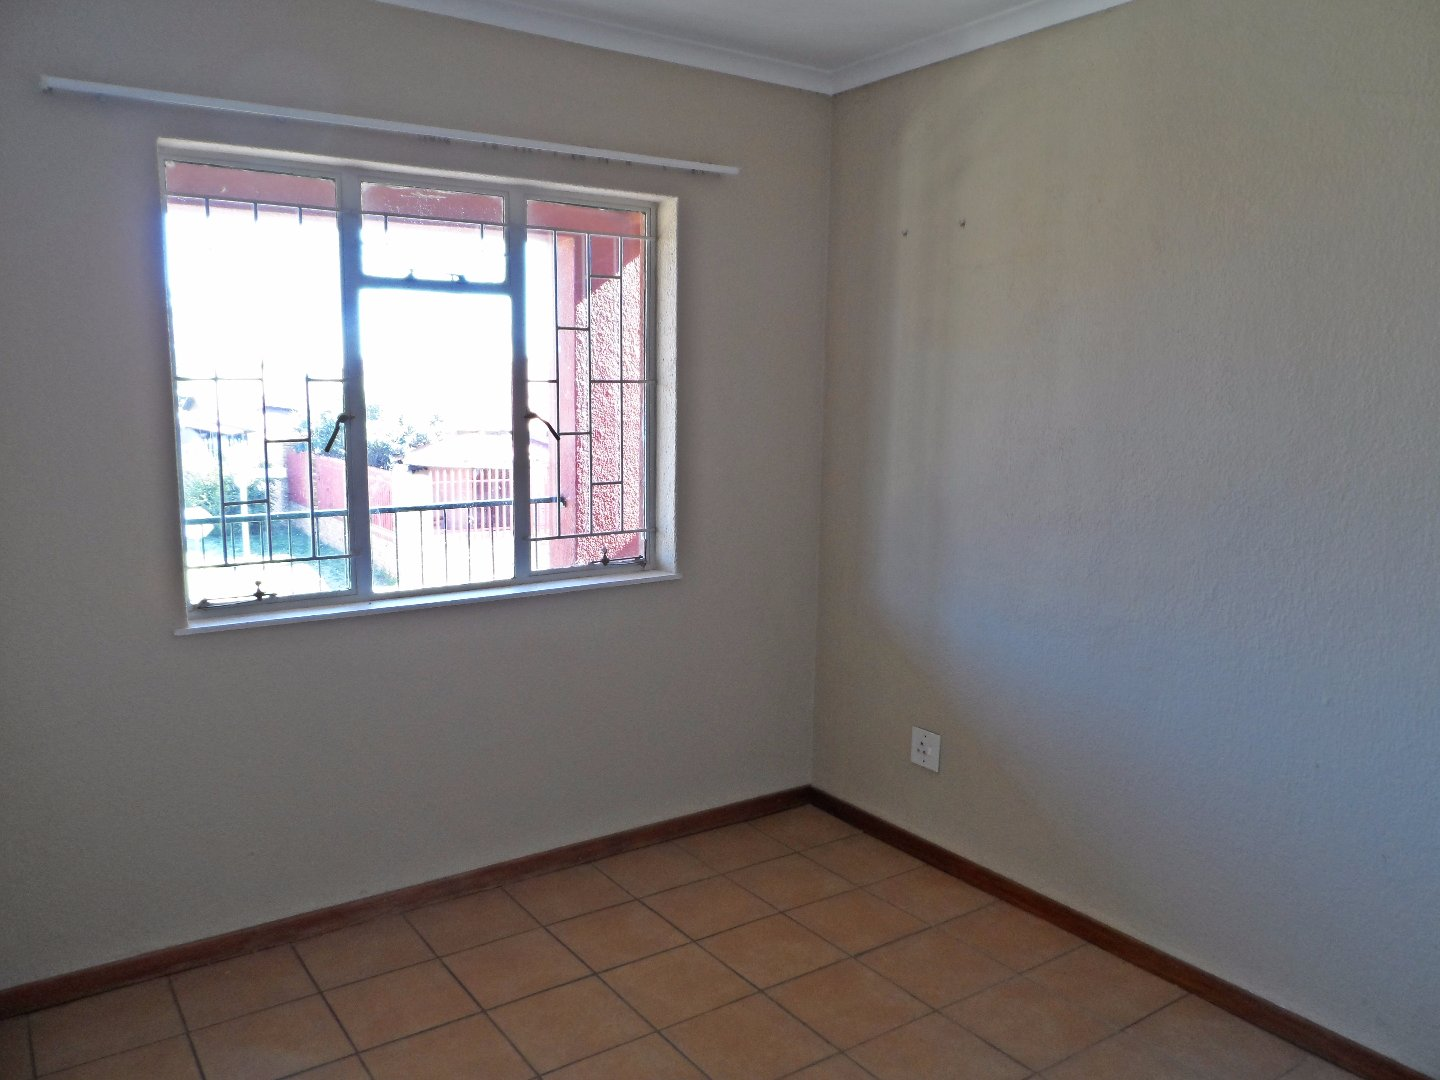 Burgershoop property for sale. Ref No: 13393540. Picture no 11